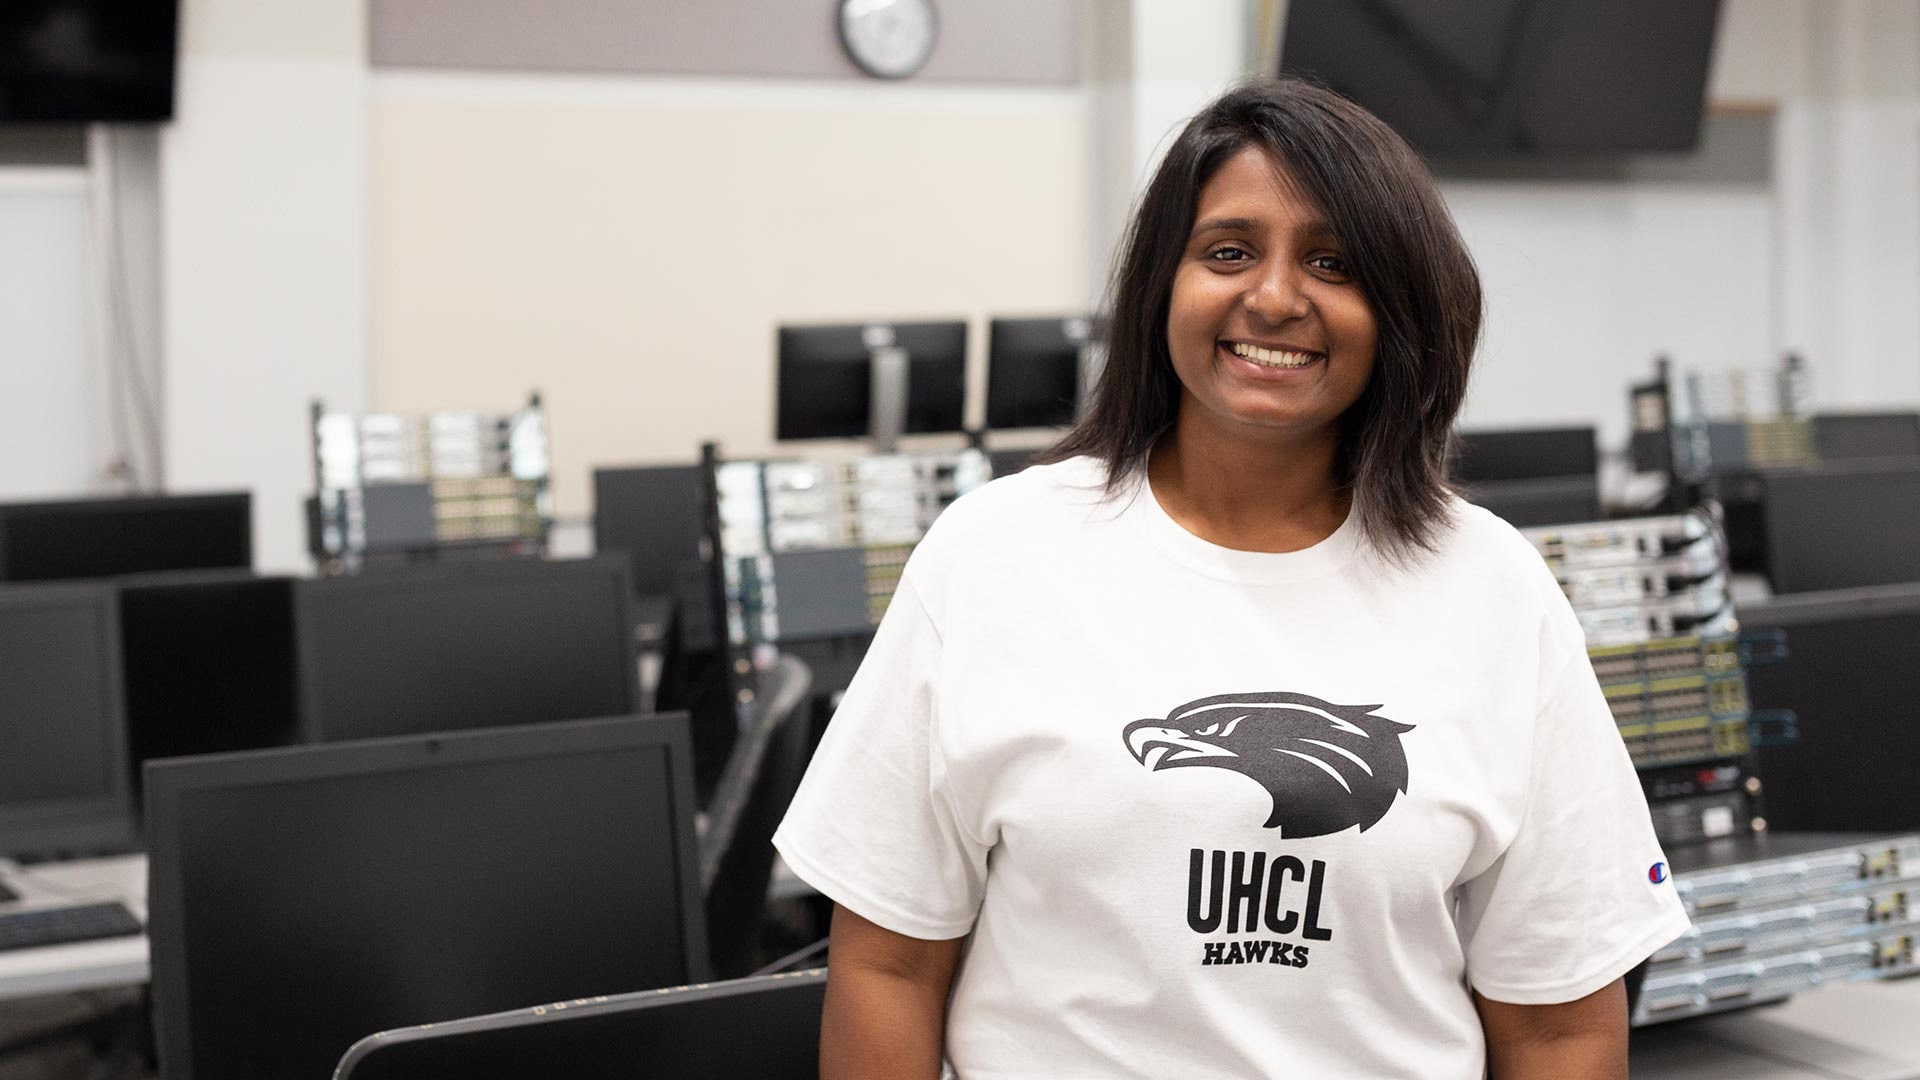 International student finds connection, purpose at UHCL